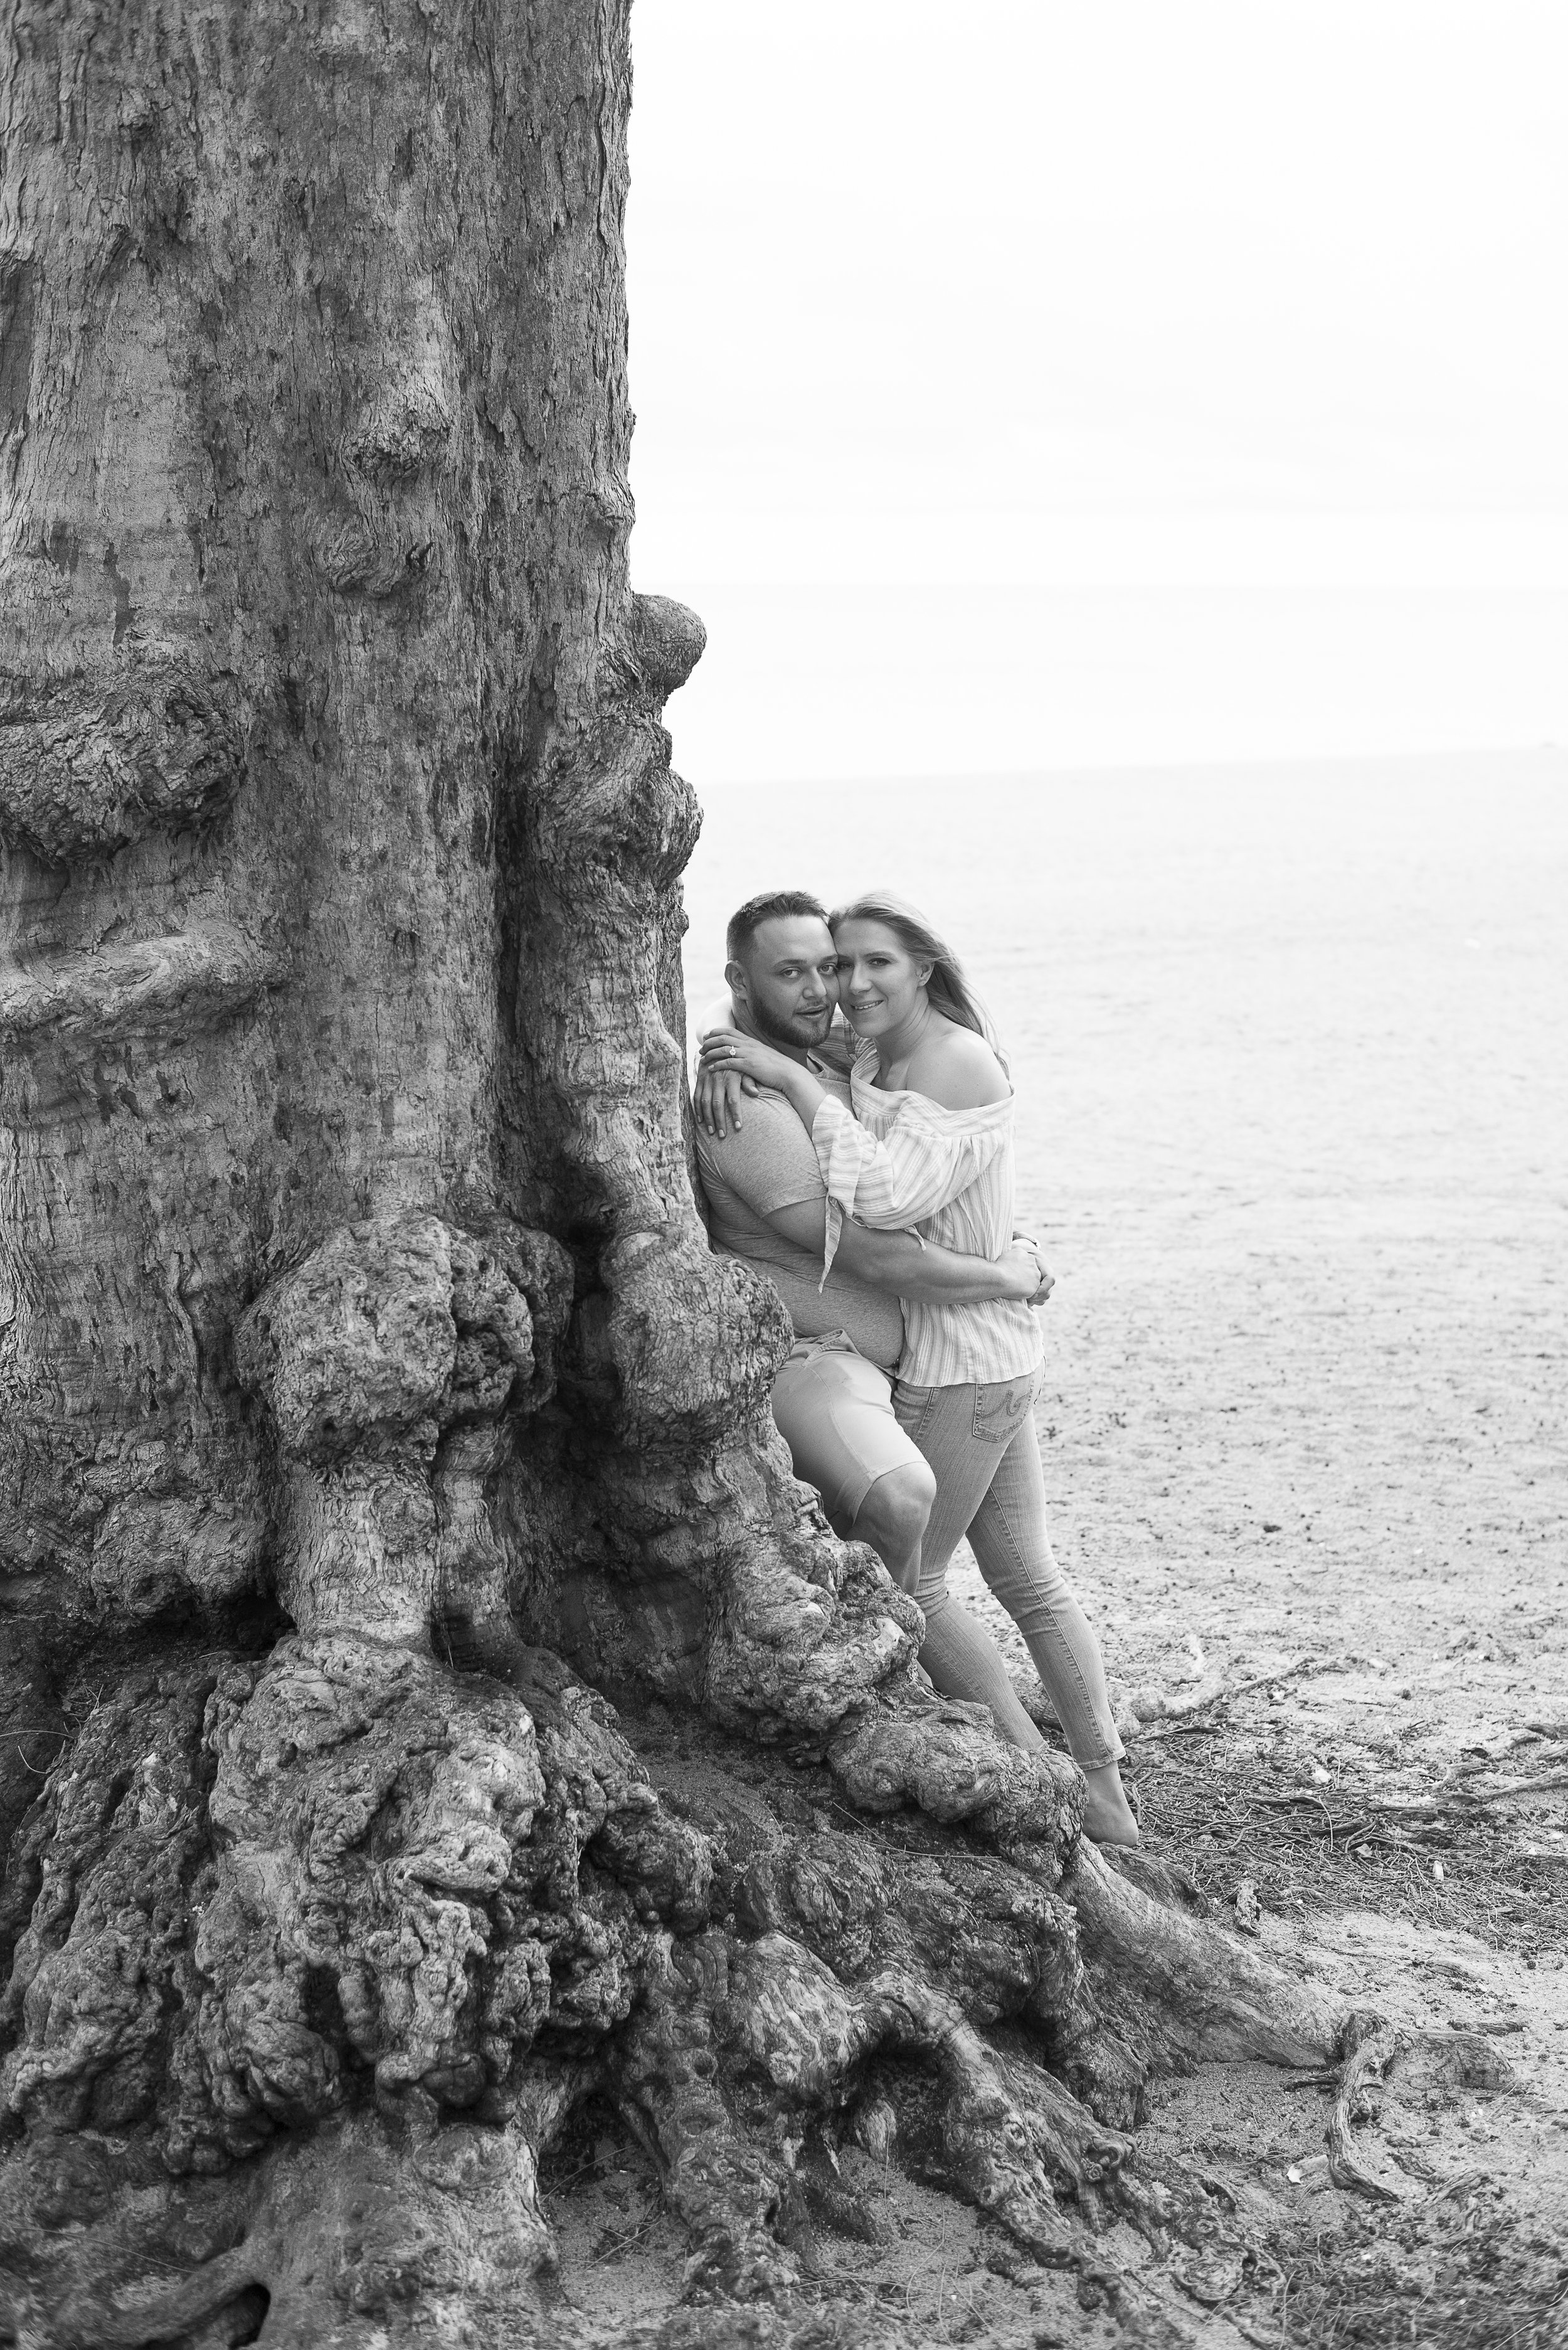 Beach side engagement photos.Engagement photos in Florida. Las Vegas Wedding Planner Andrea Eppolito. Image by AltF Photography.